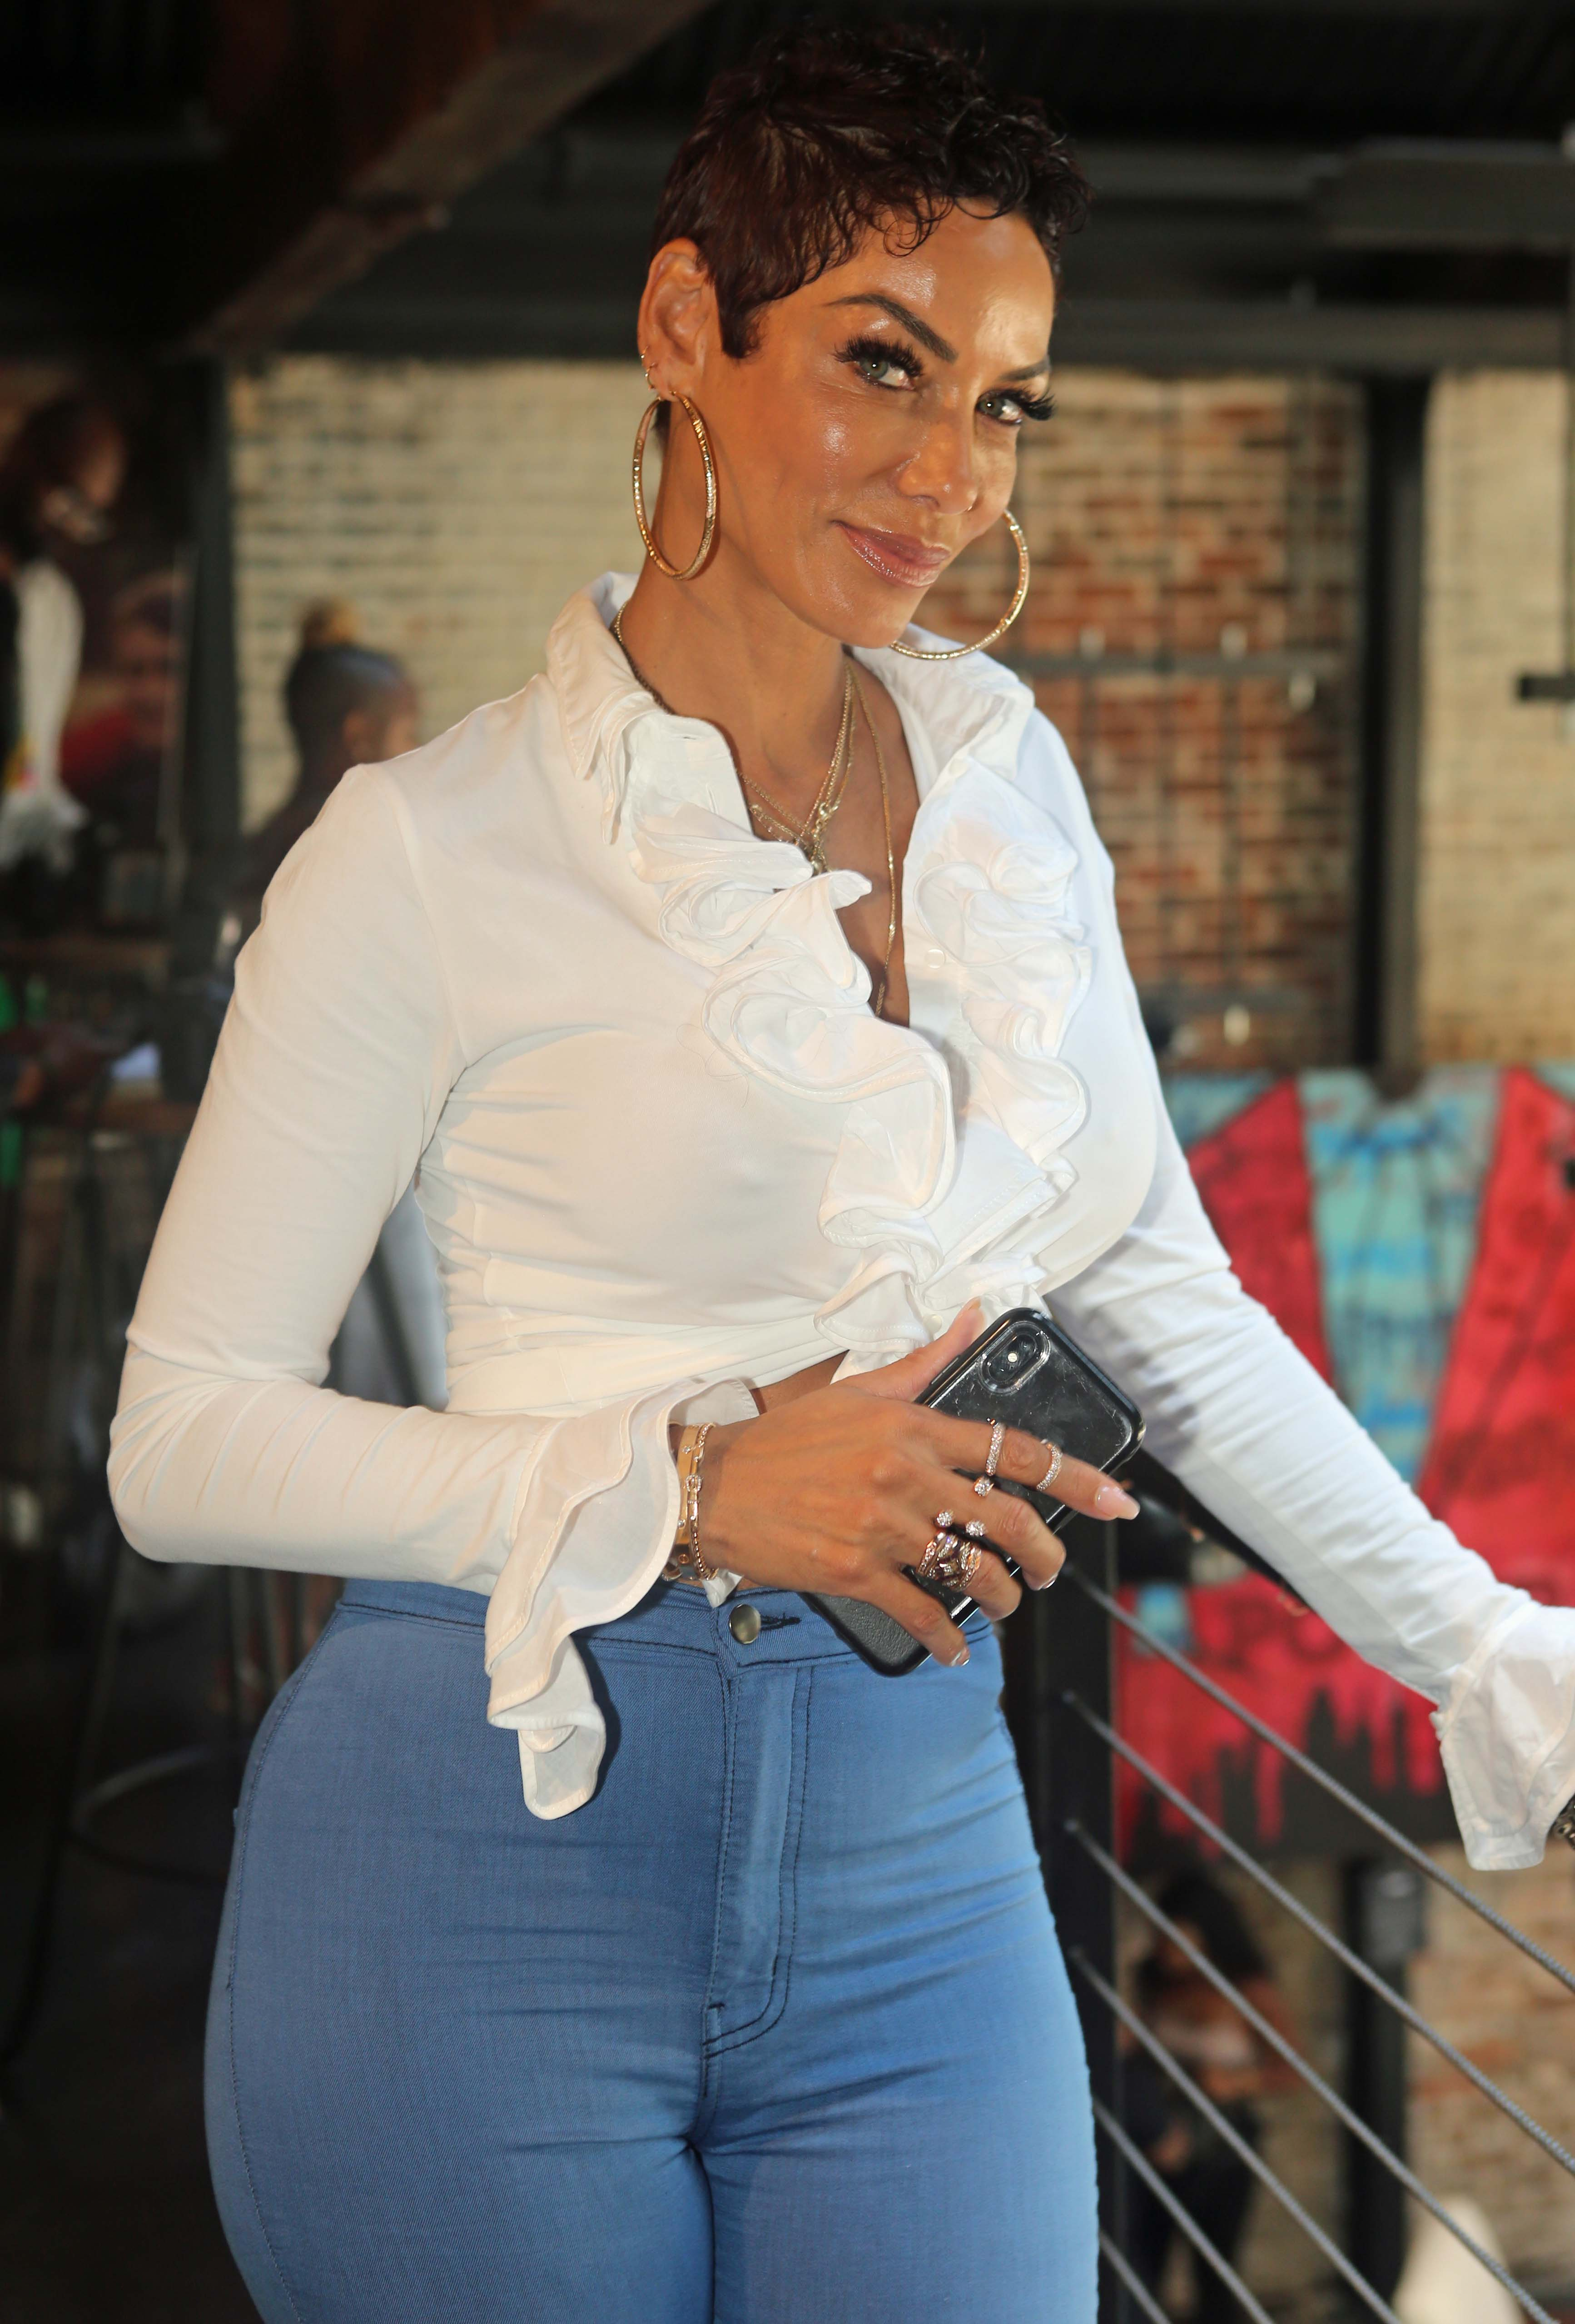 Nicole Murphy poses for a photo during the Starz Power Brunch on July 8, 2018 in Louisiana | Photo: Getty Images